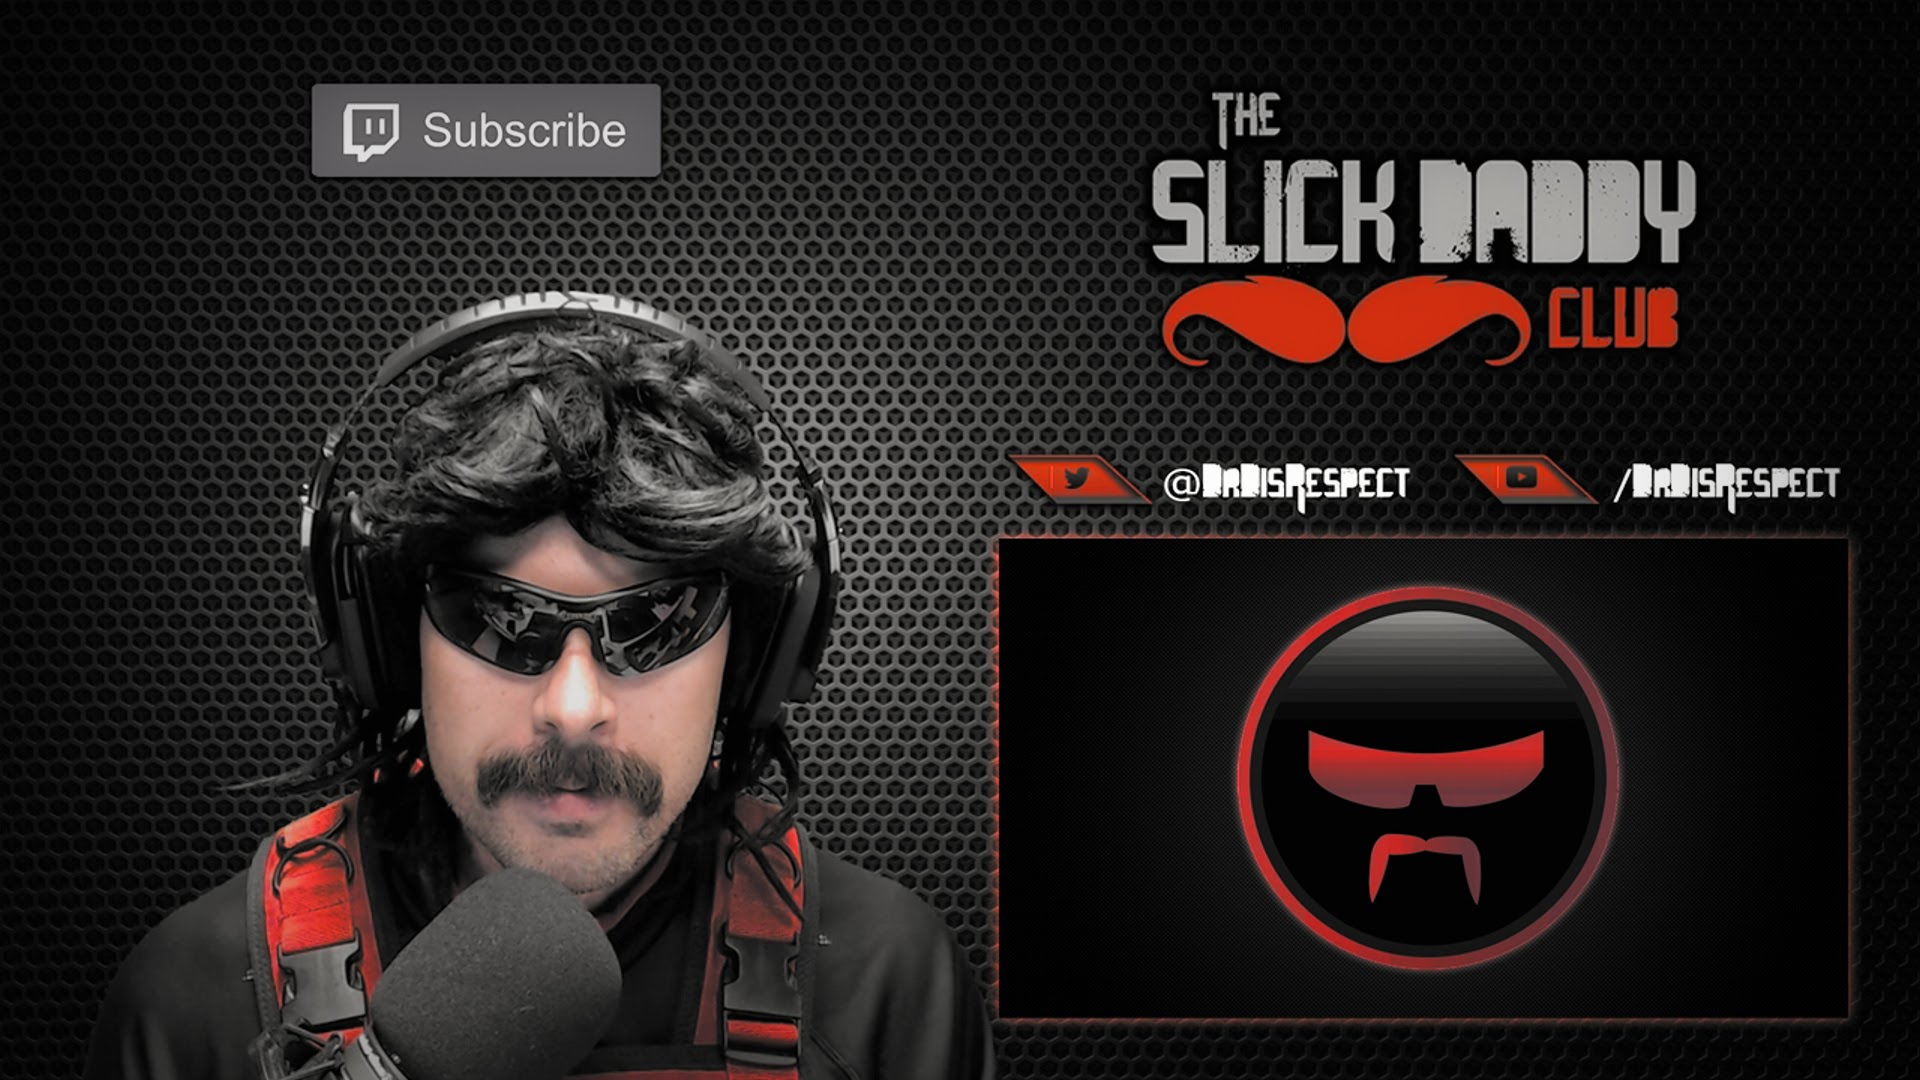 DrDisrespect is known as one of the most entertaining streamers today.